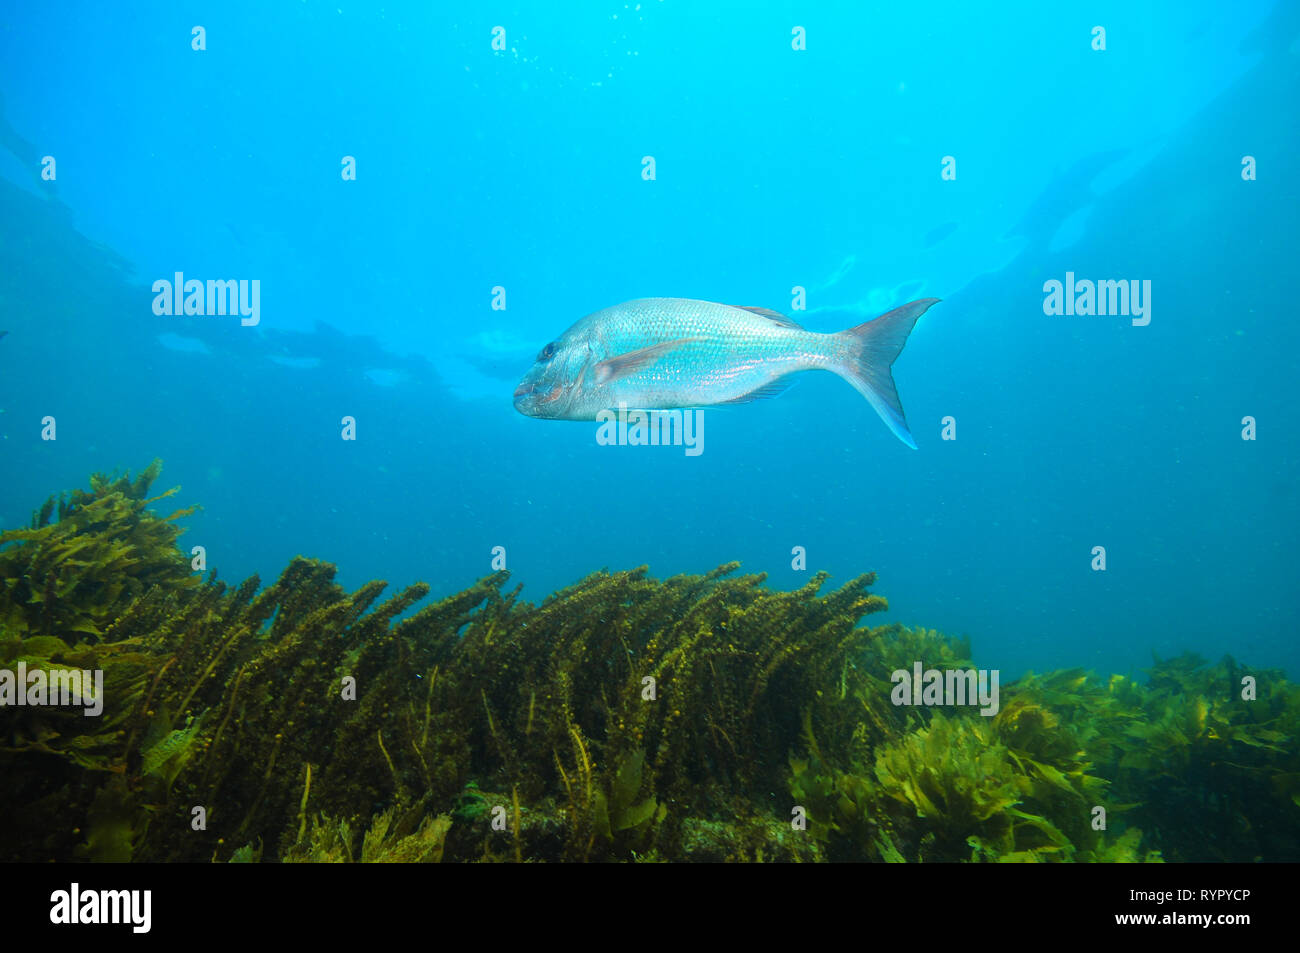 Australasian snapper Pagrus auratus hovering between blue sea surface and dense seaweeds covering bottom. - Stock Image